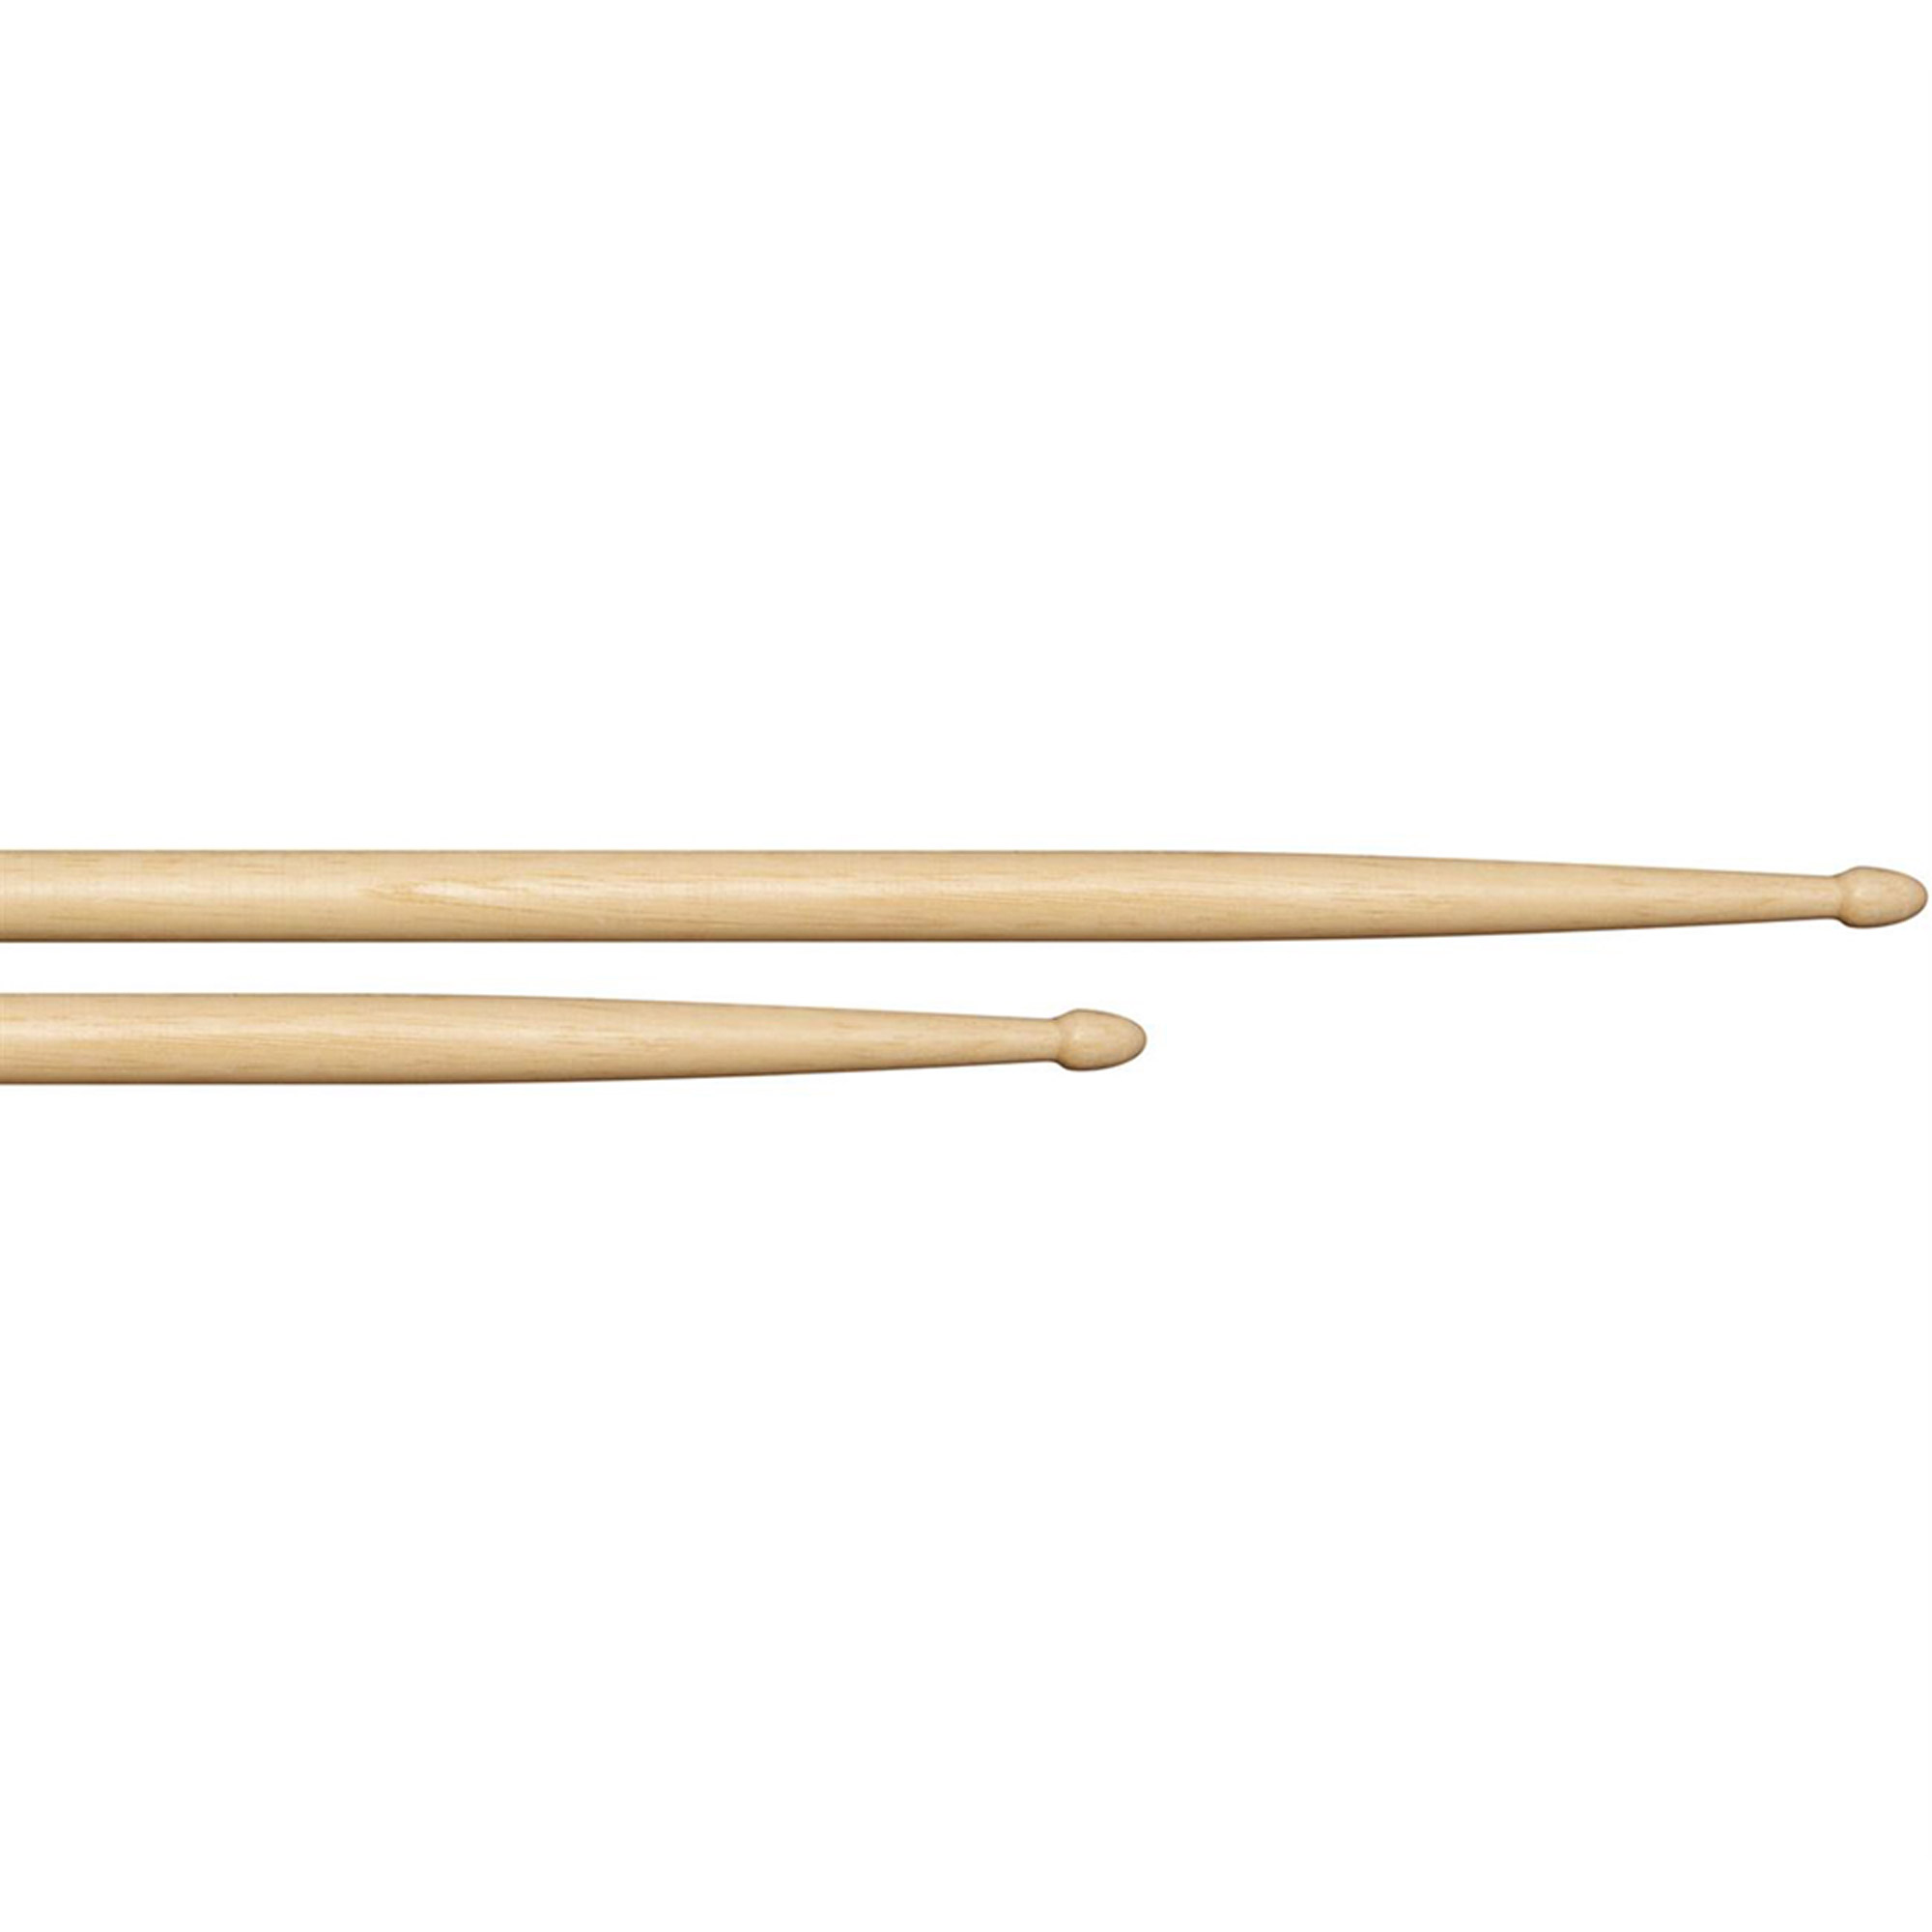 Vater American Hickory 7A Stretch Wood Tip Drumsticks by Vater